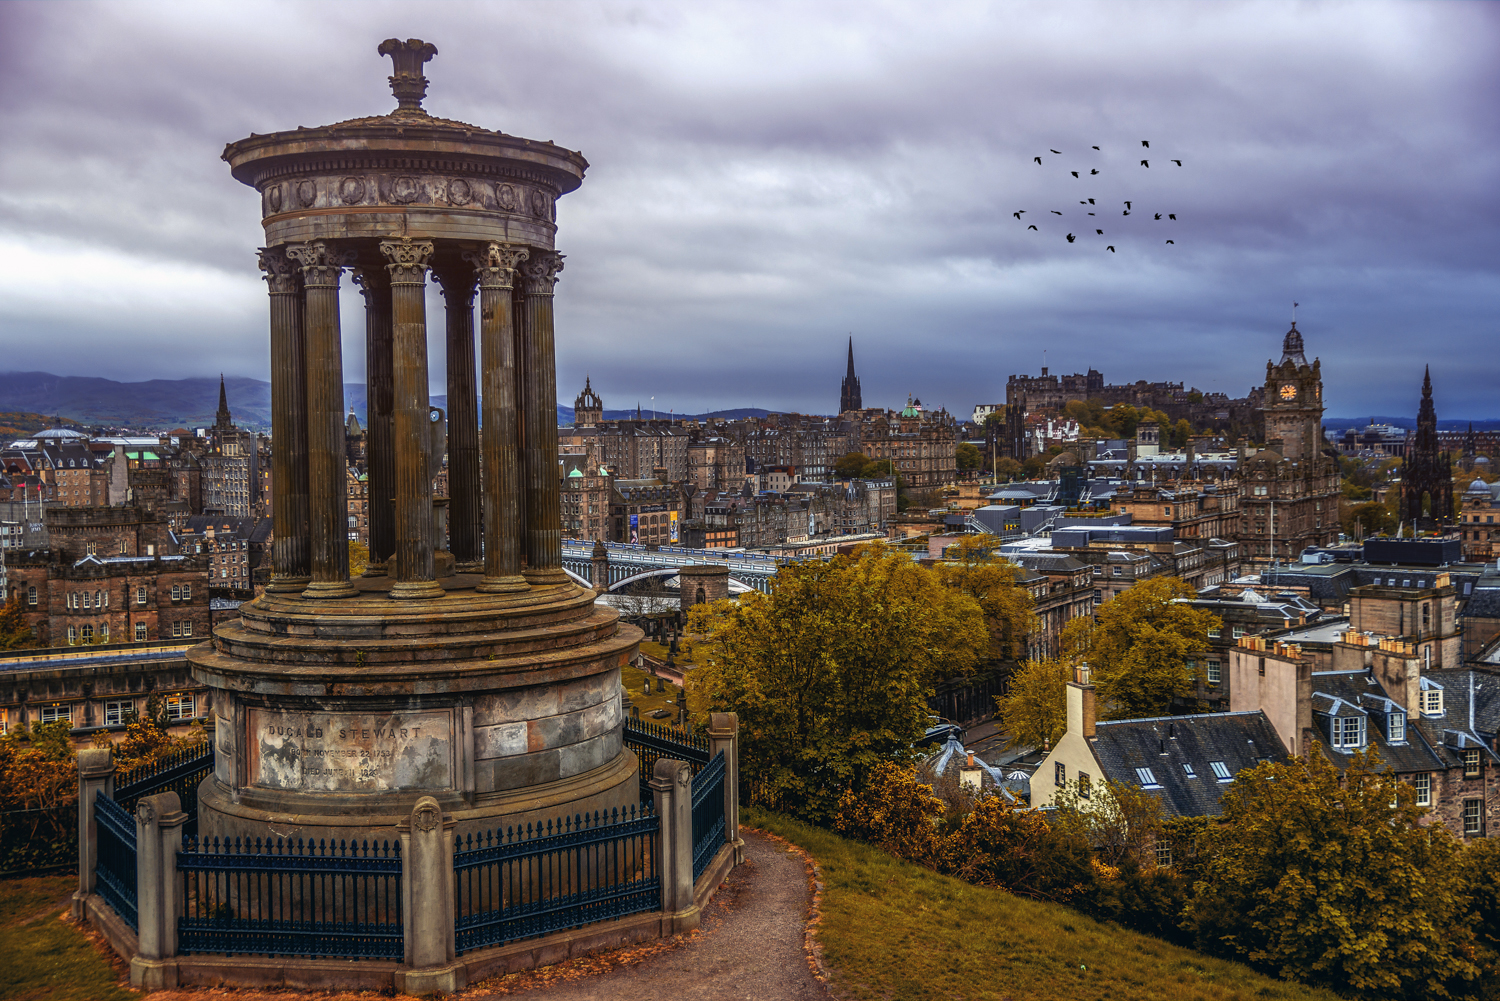 https://sleeklens.com/wp-content/uploads/2016/10/EdinburghMaj2015-D800-22after.jpg